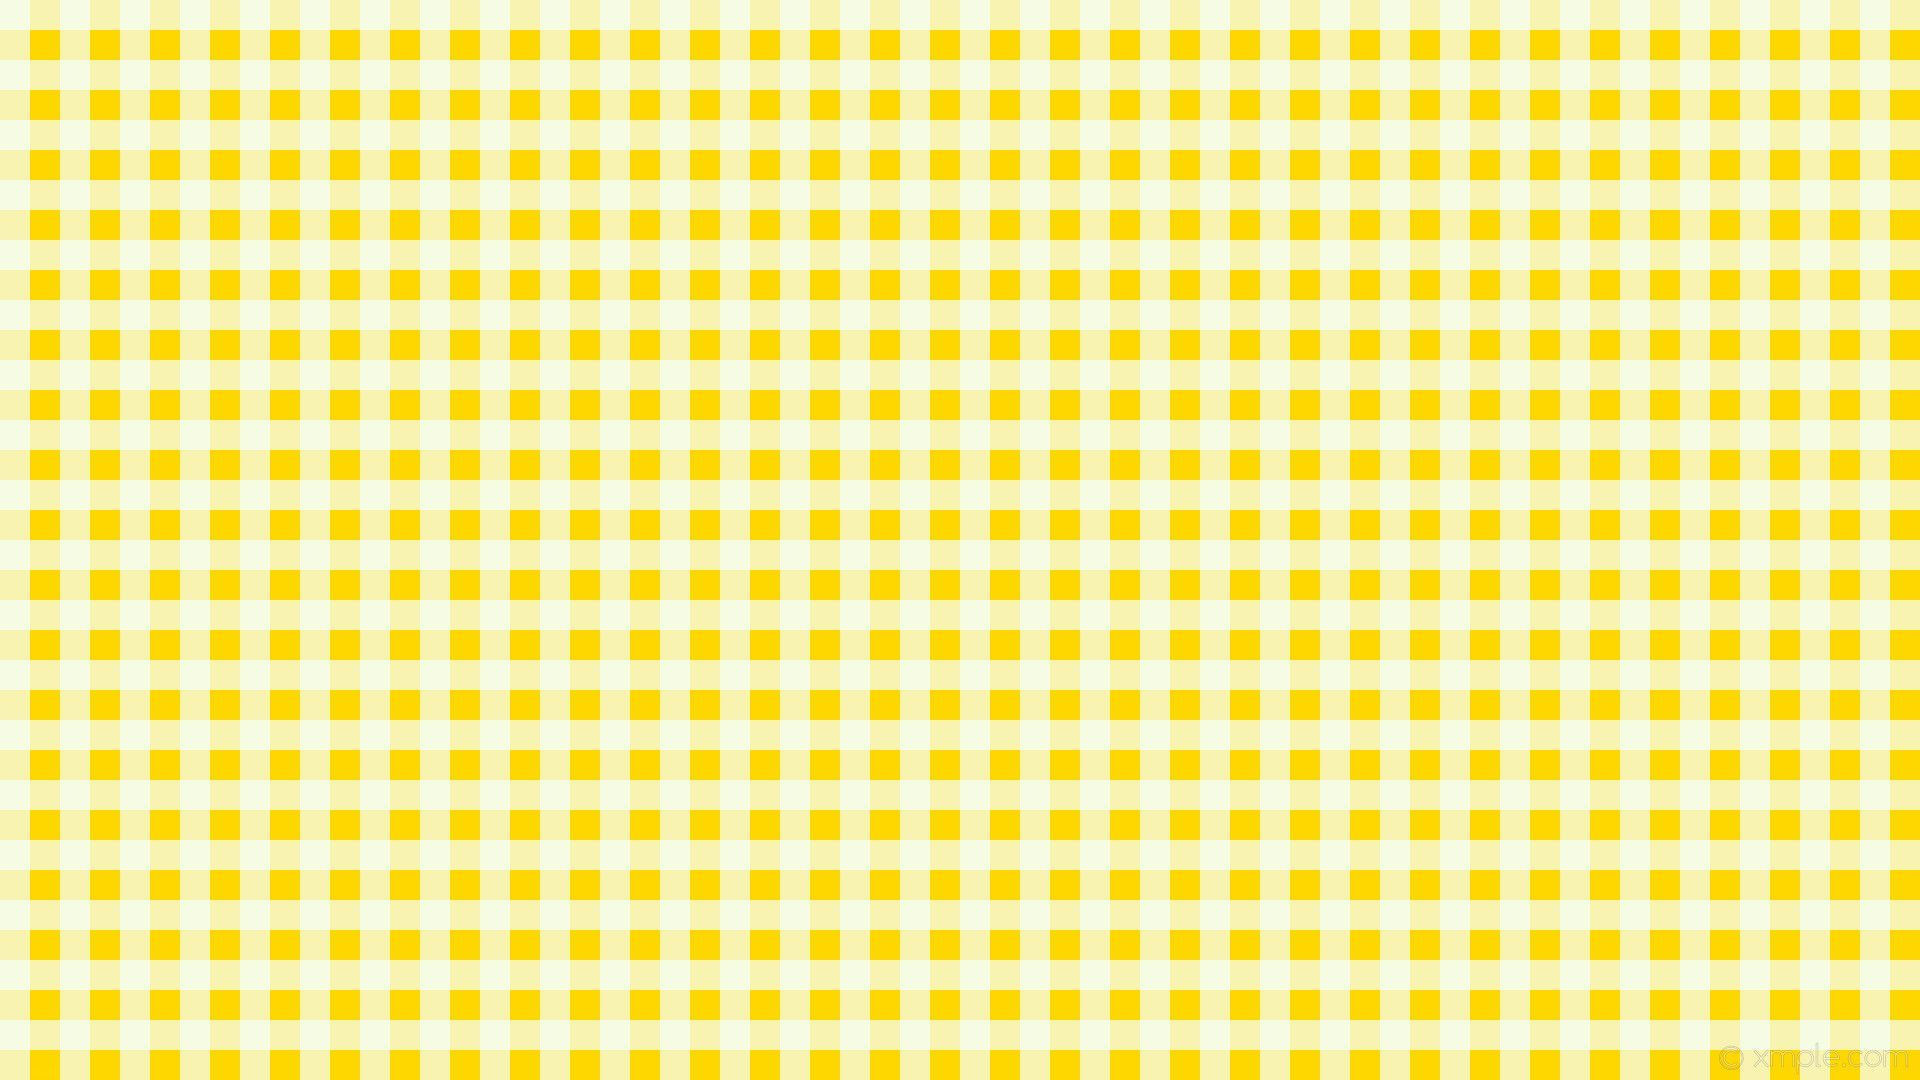 Yellow Aesthetic Wallpaper In 2020 Yellow Wallpaper Yellow Aesthetic Aesthetic Wallpapers